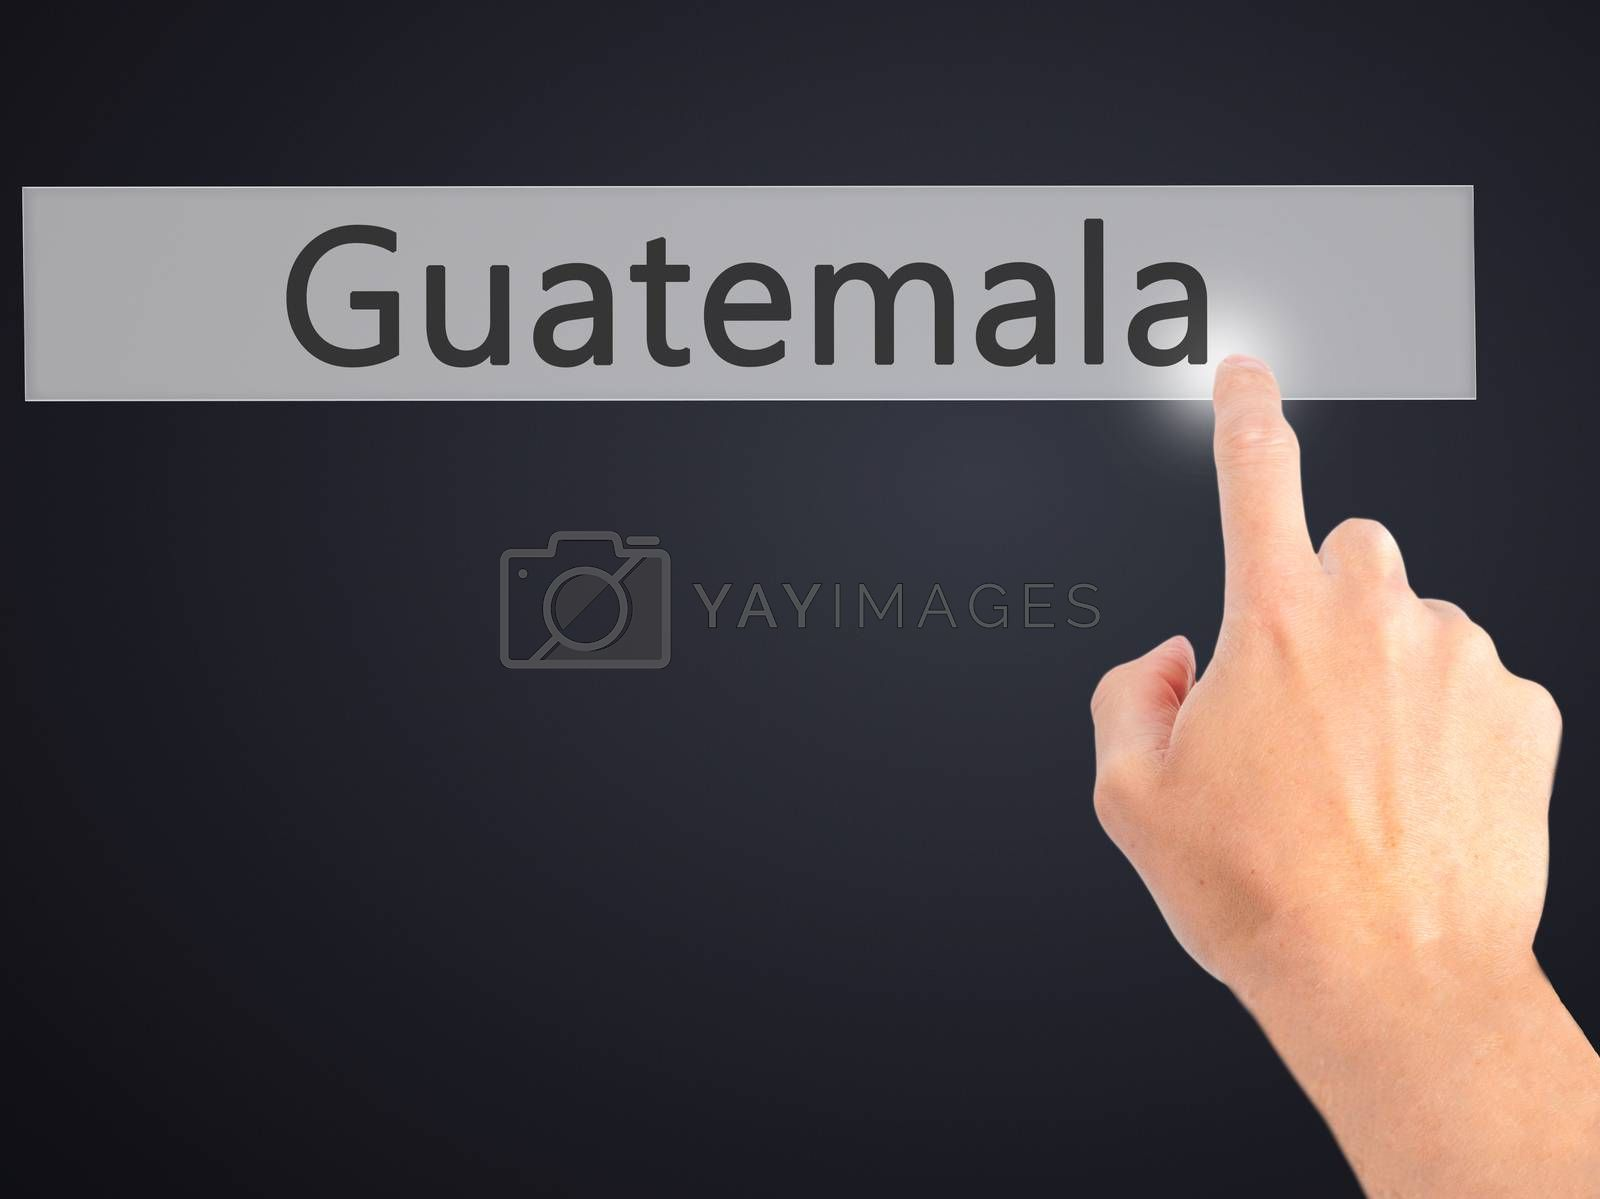 Guatemala - Hand pressing a button on blurred background concept by jackald